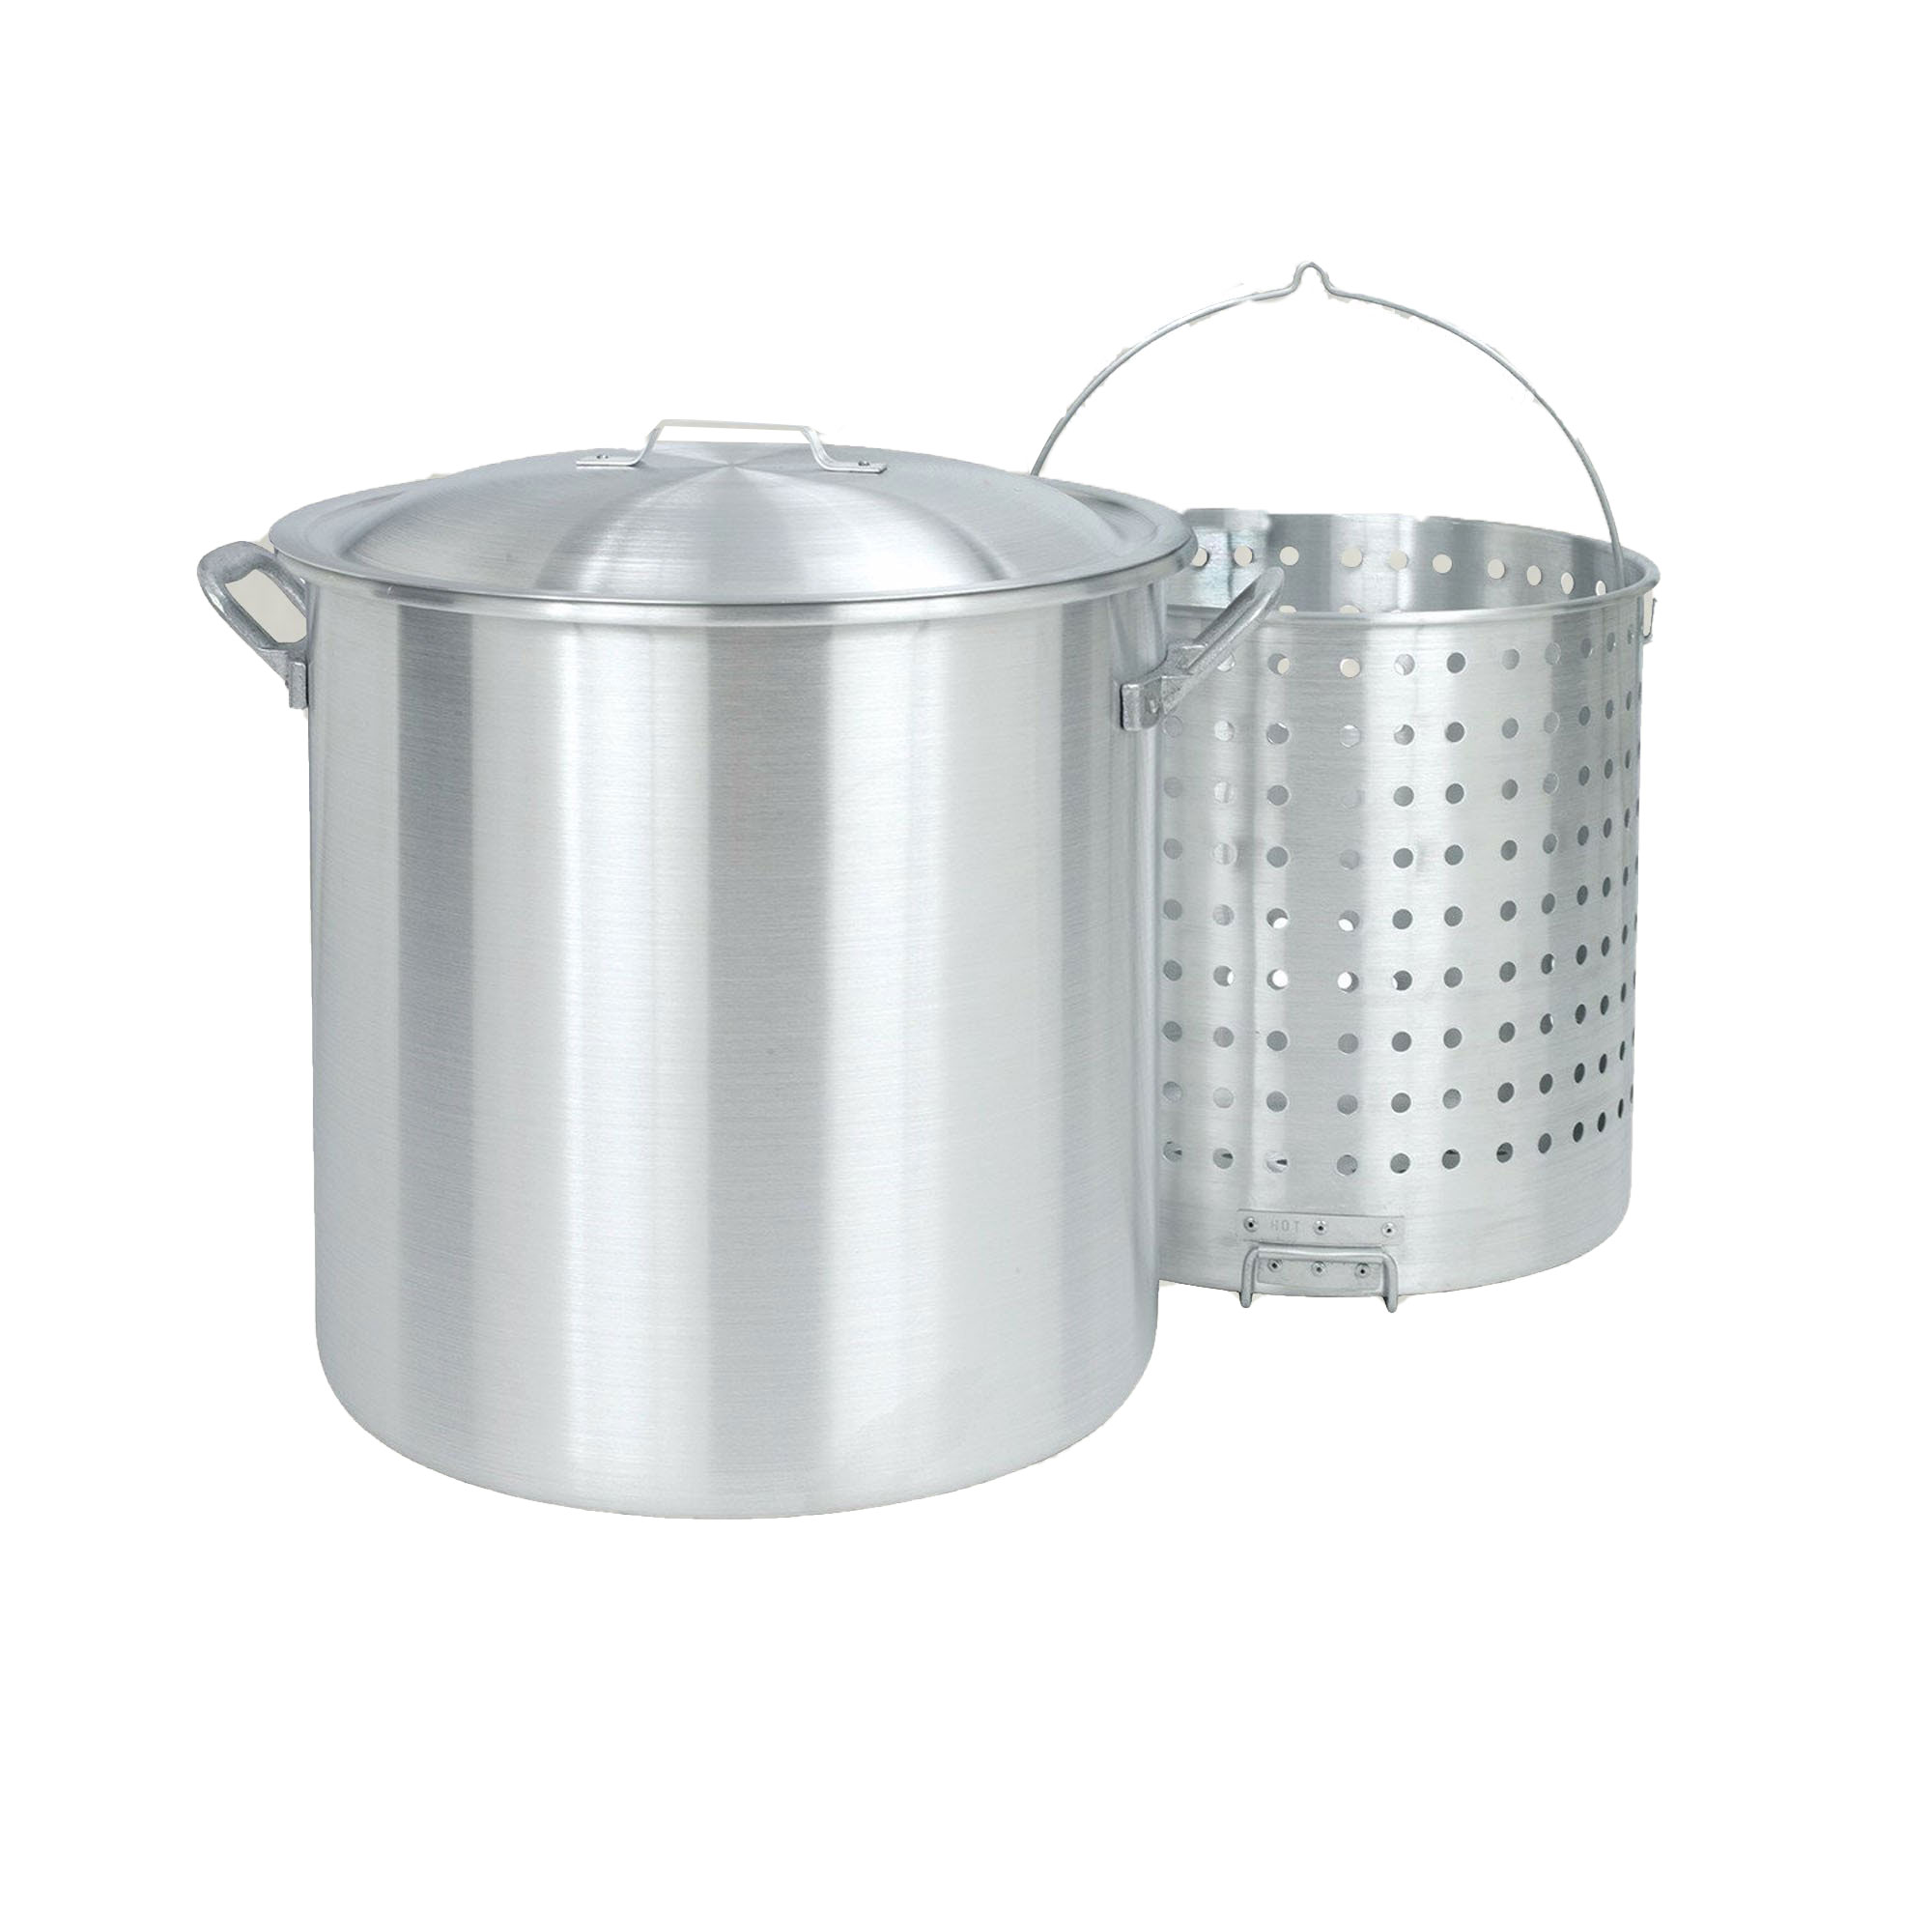 Bayou Clic Large 100 Quart Stainless Steel Stockpot Boiler Handy Basket